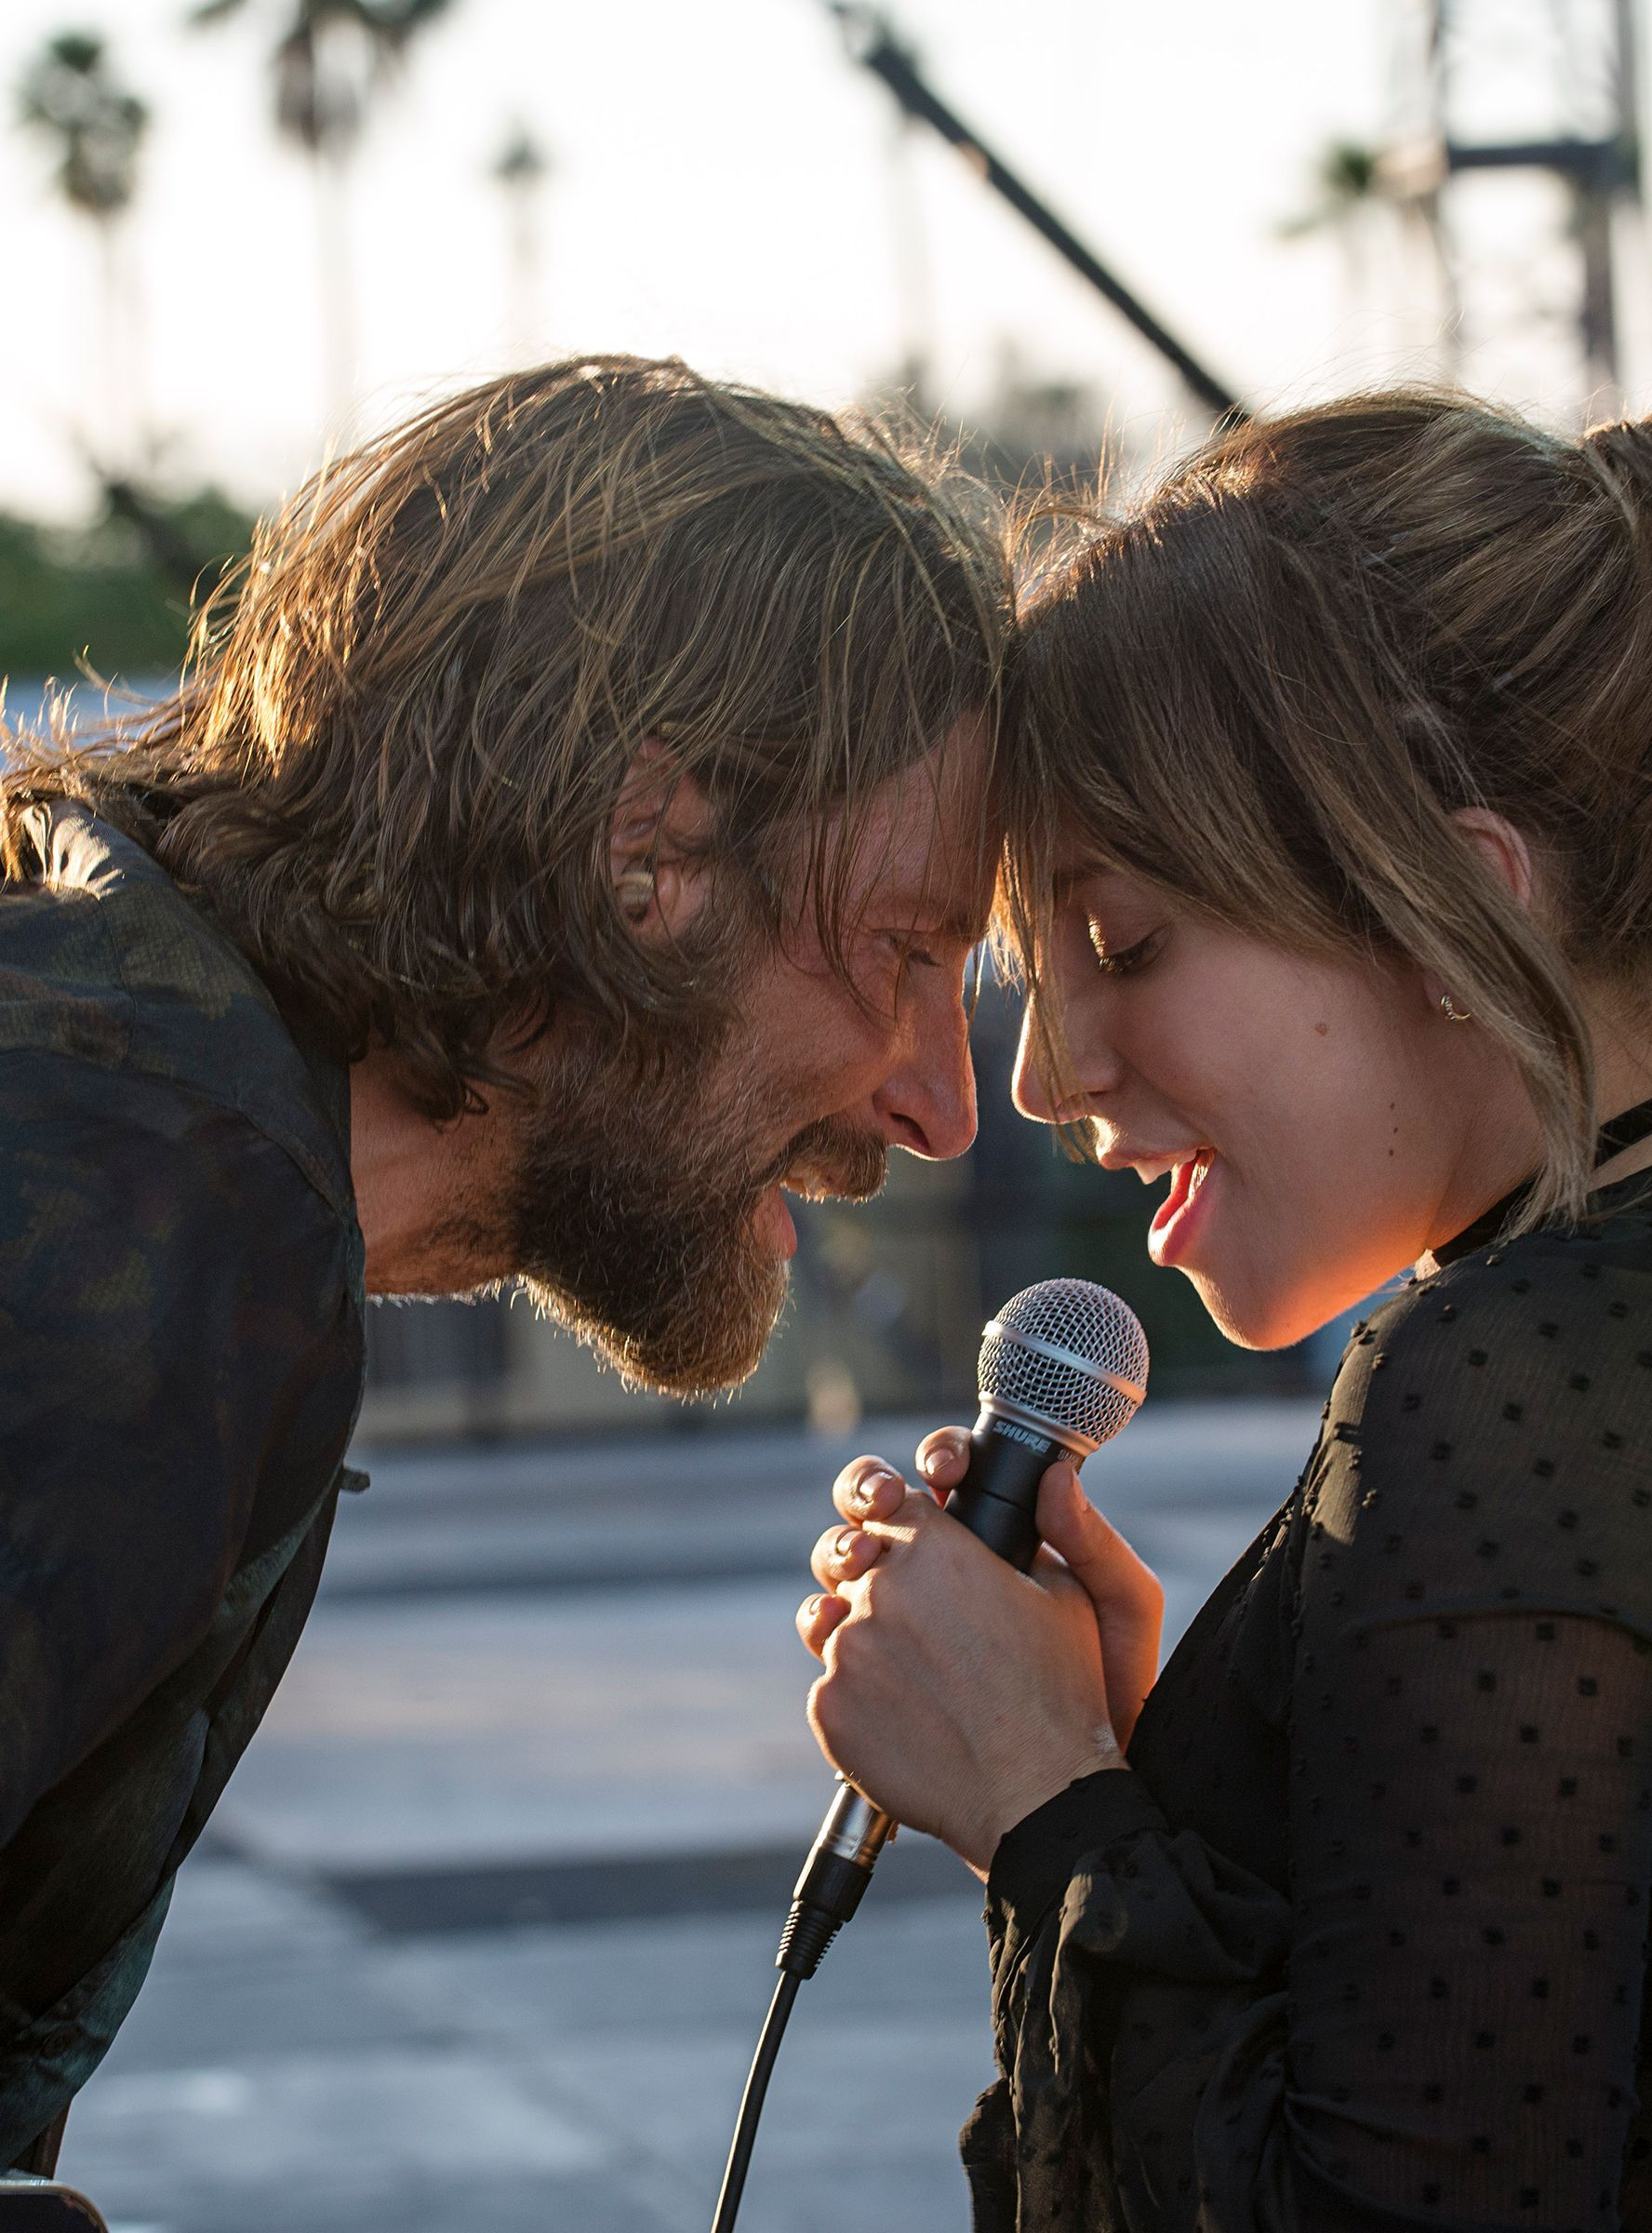 Hear Bradley Cooper Lady Gaga Sing In The Trailer For A Star Is Born A Star Is Born Romantic Movies Best Romantic Movies